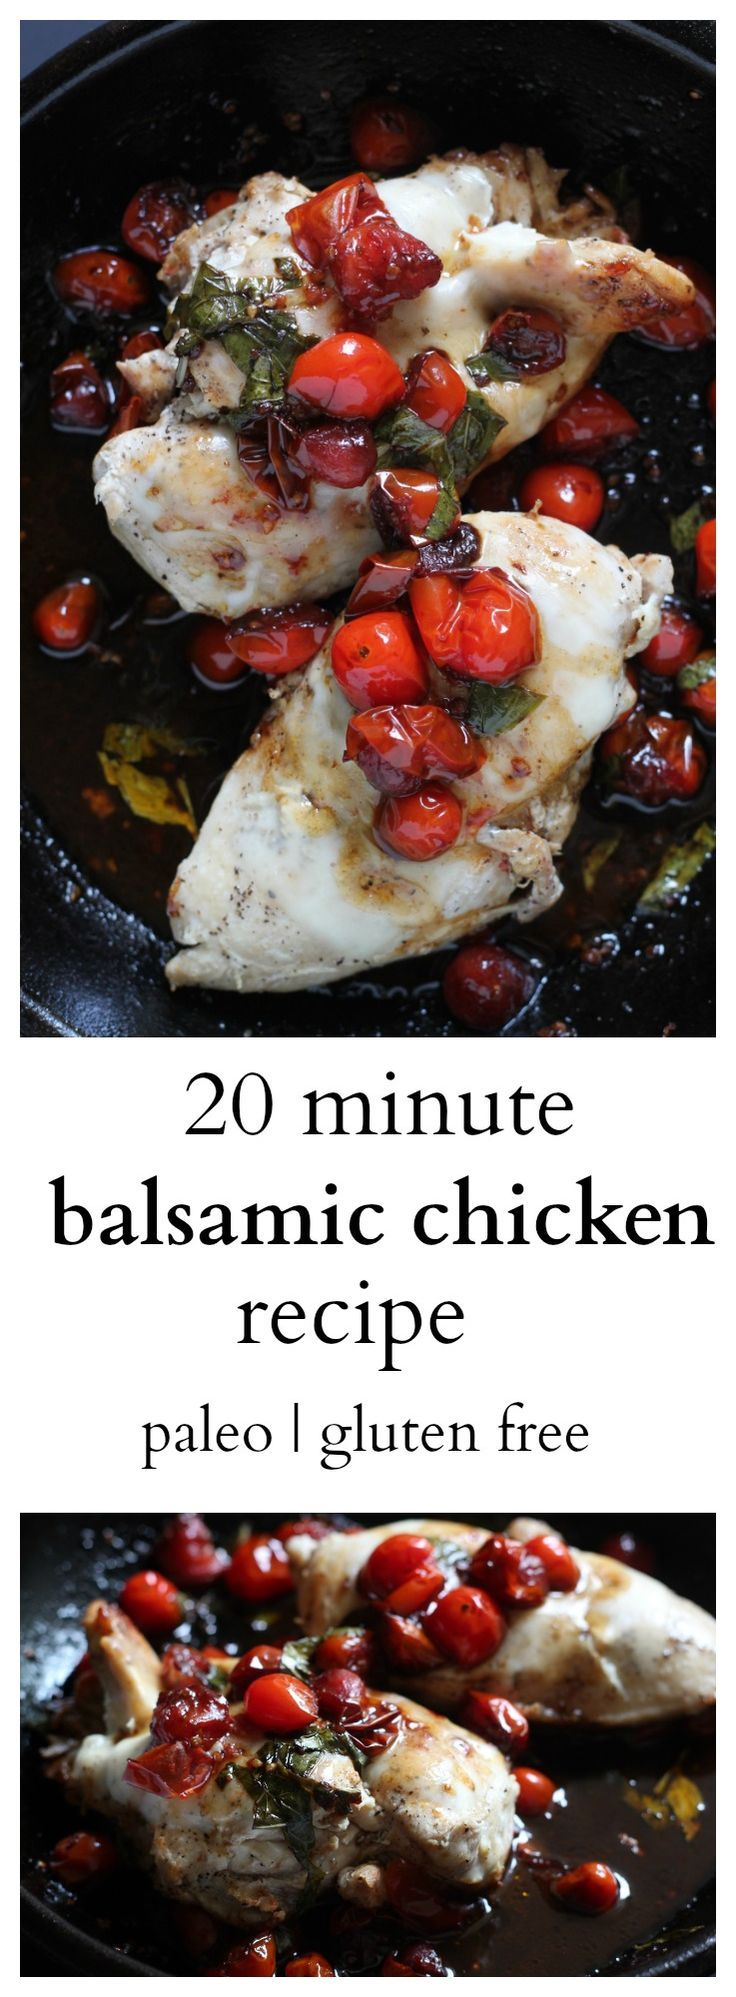 This recipe is SO easy to make, incredibly tasty, Paleo, and gluten free. A recipe you will make over and over again.